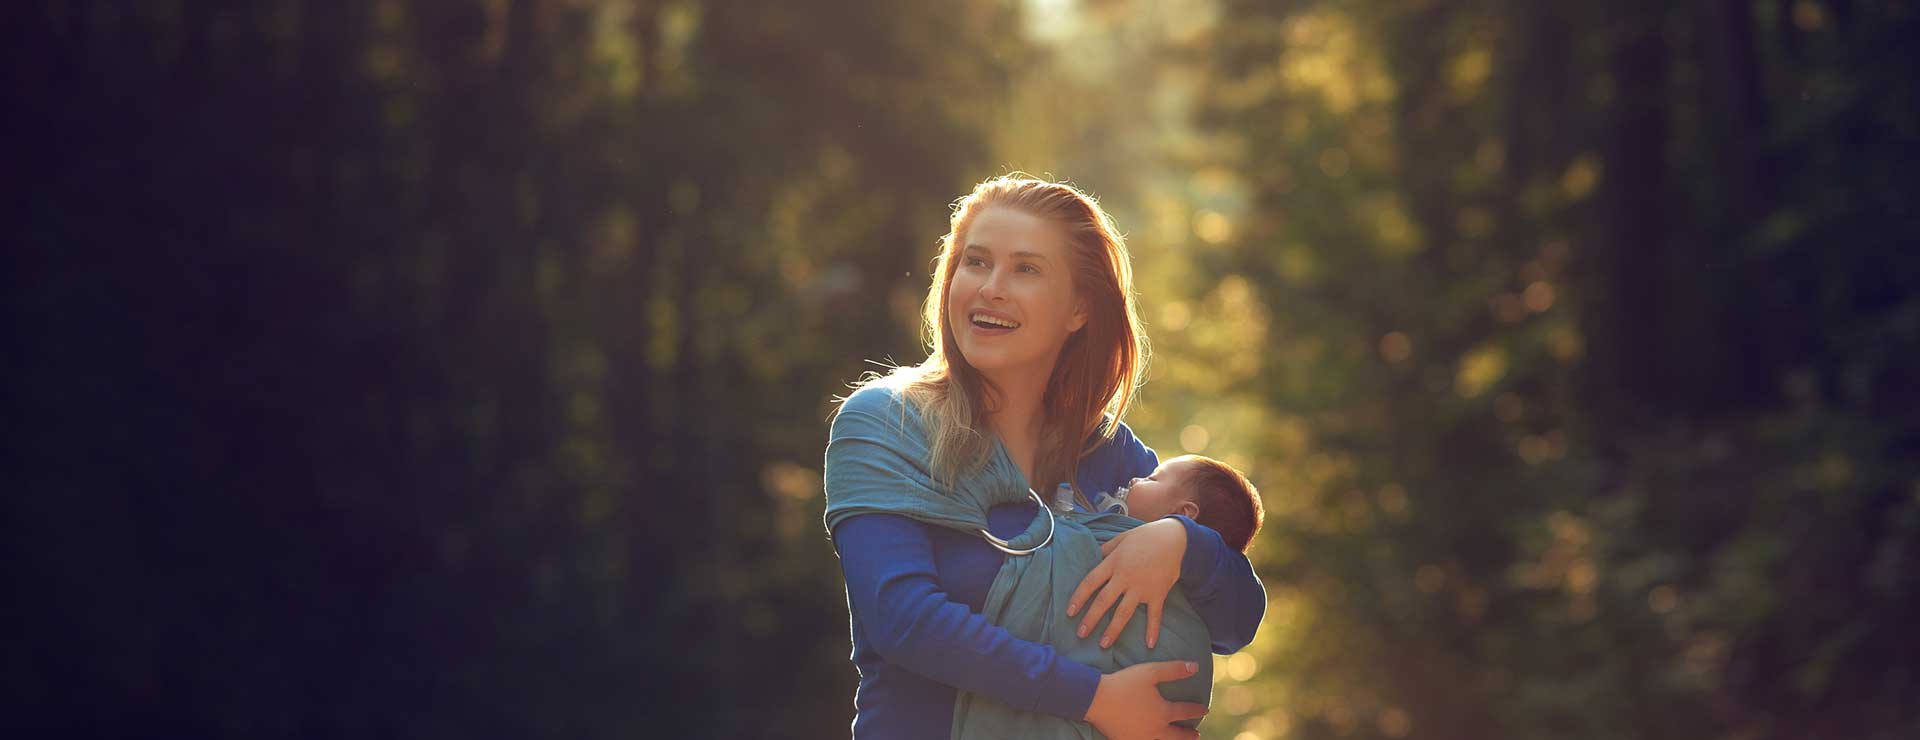 Happy woman carrying a baby outdoors